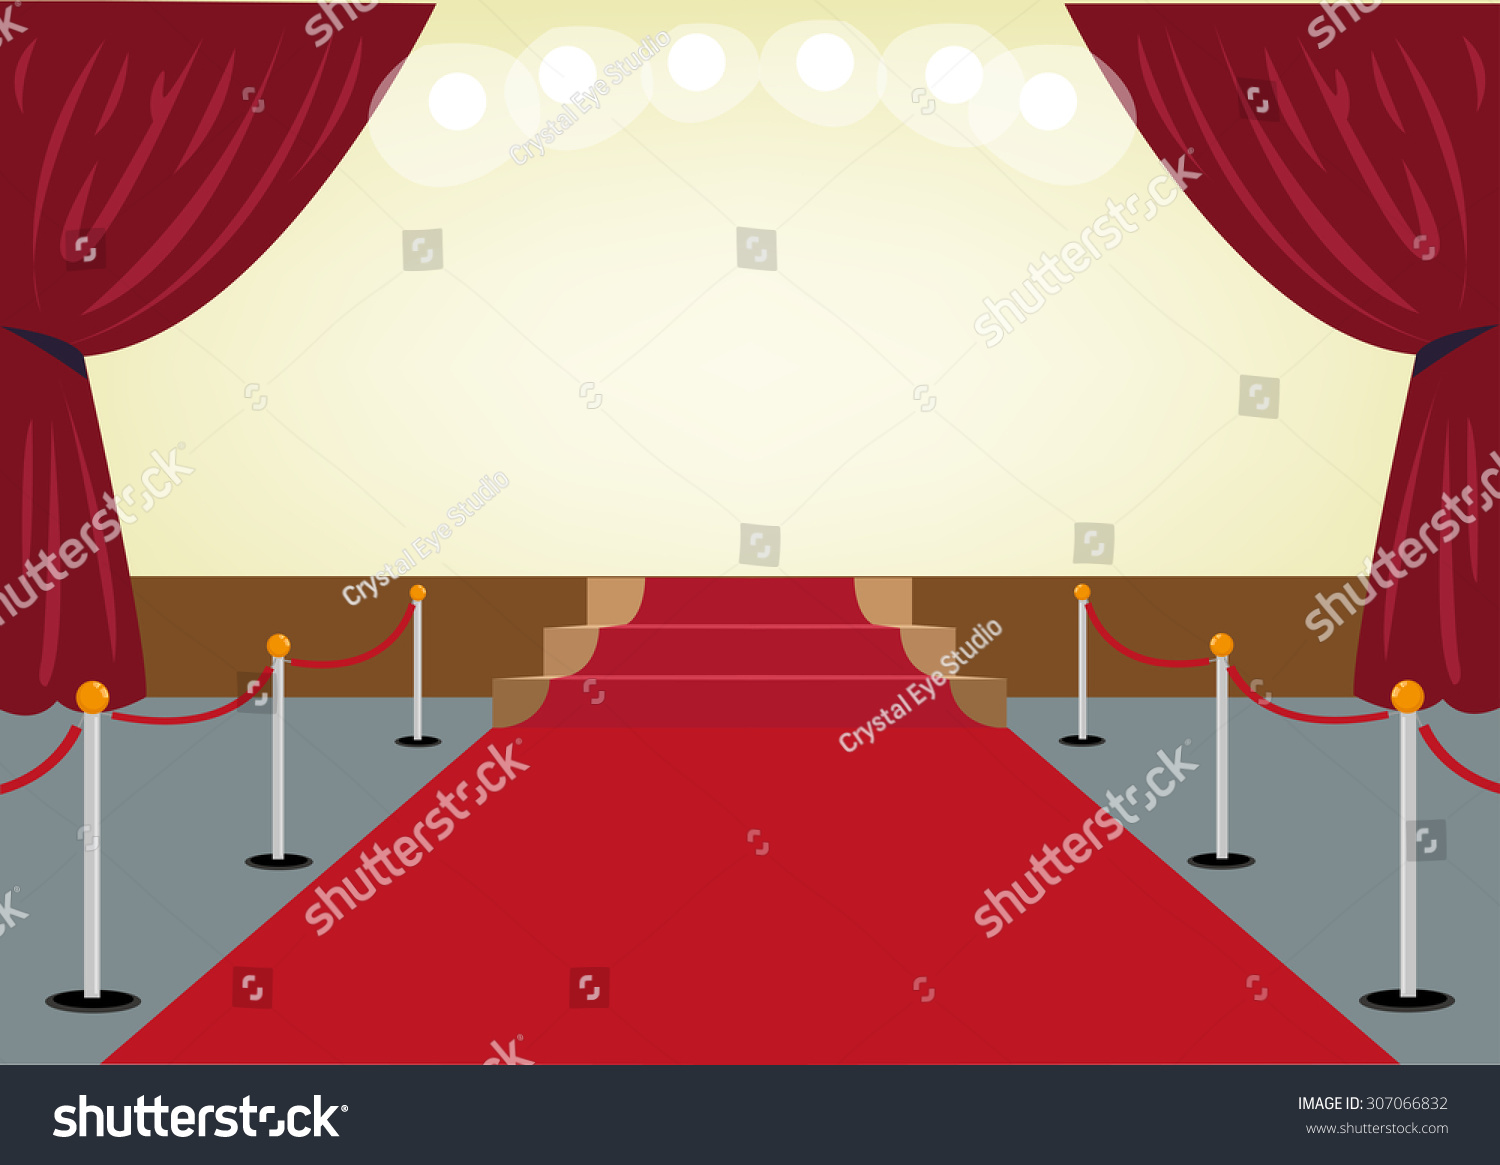 Carpet clipart  Red Carpet Towards Stage Red Curtain Stock Vector 307066832 ...